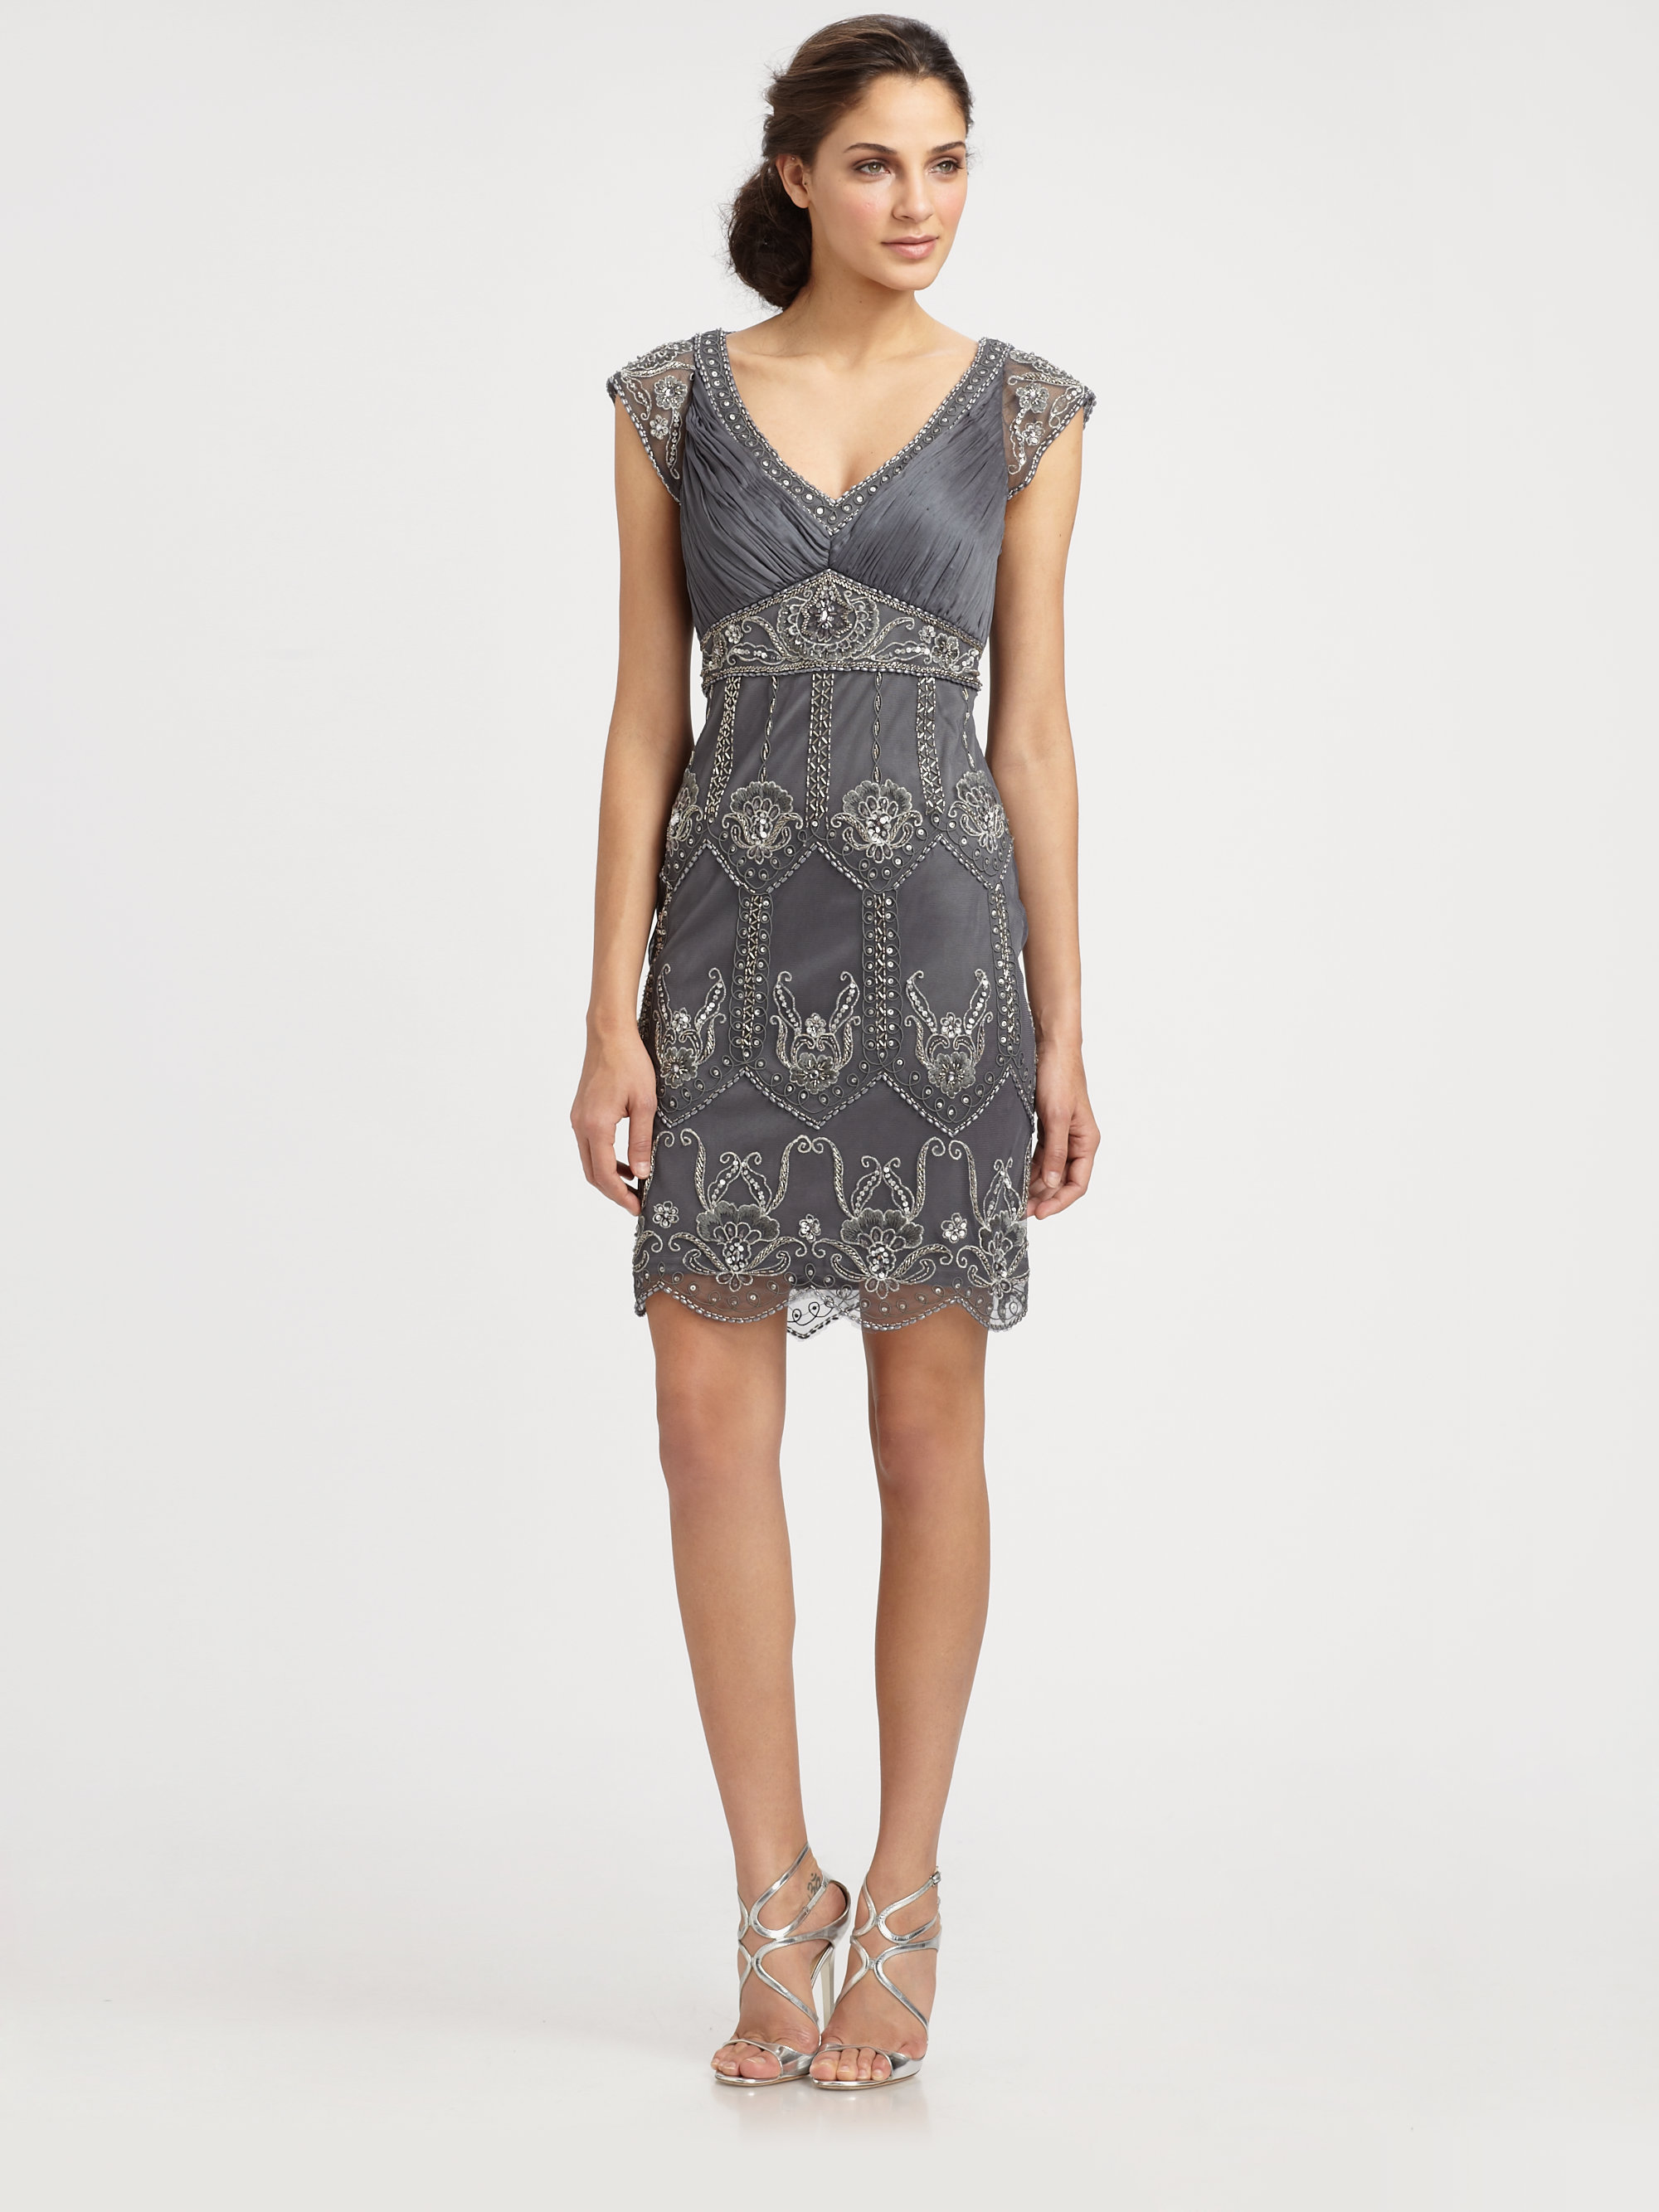 Sue Wong Embellished Champagne Dress In Charcoal Gray Lyst